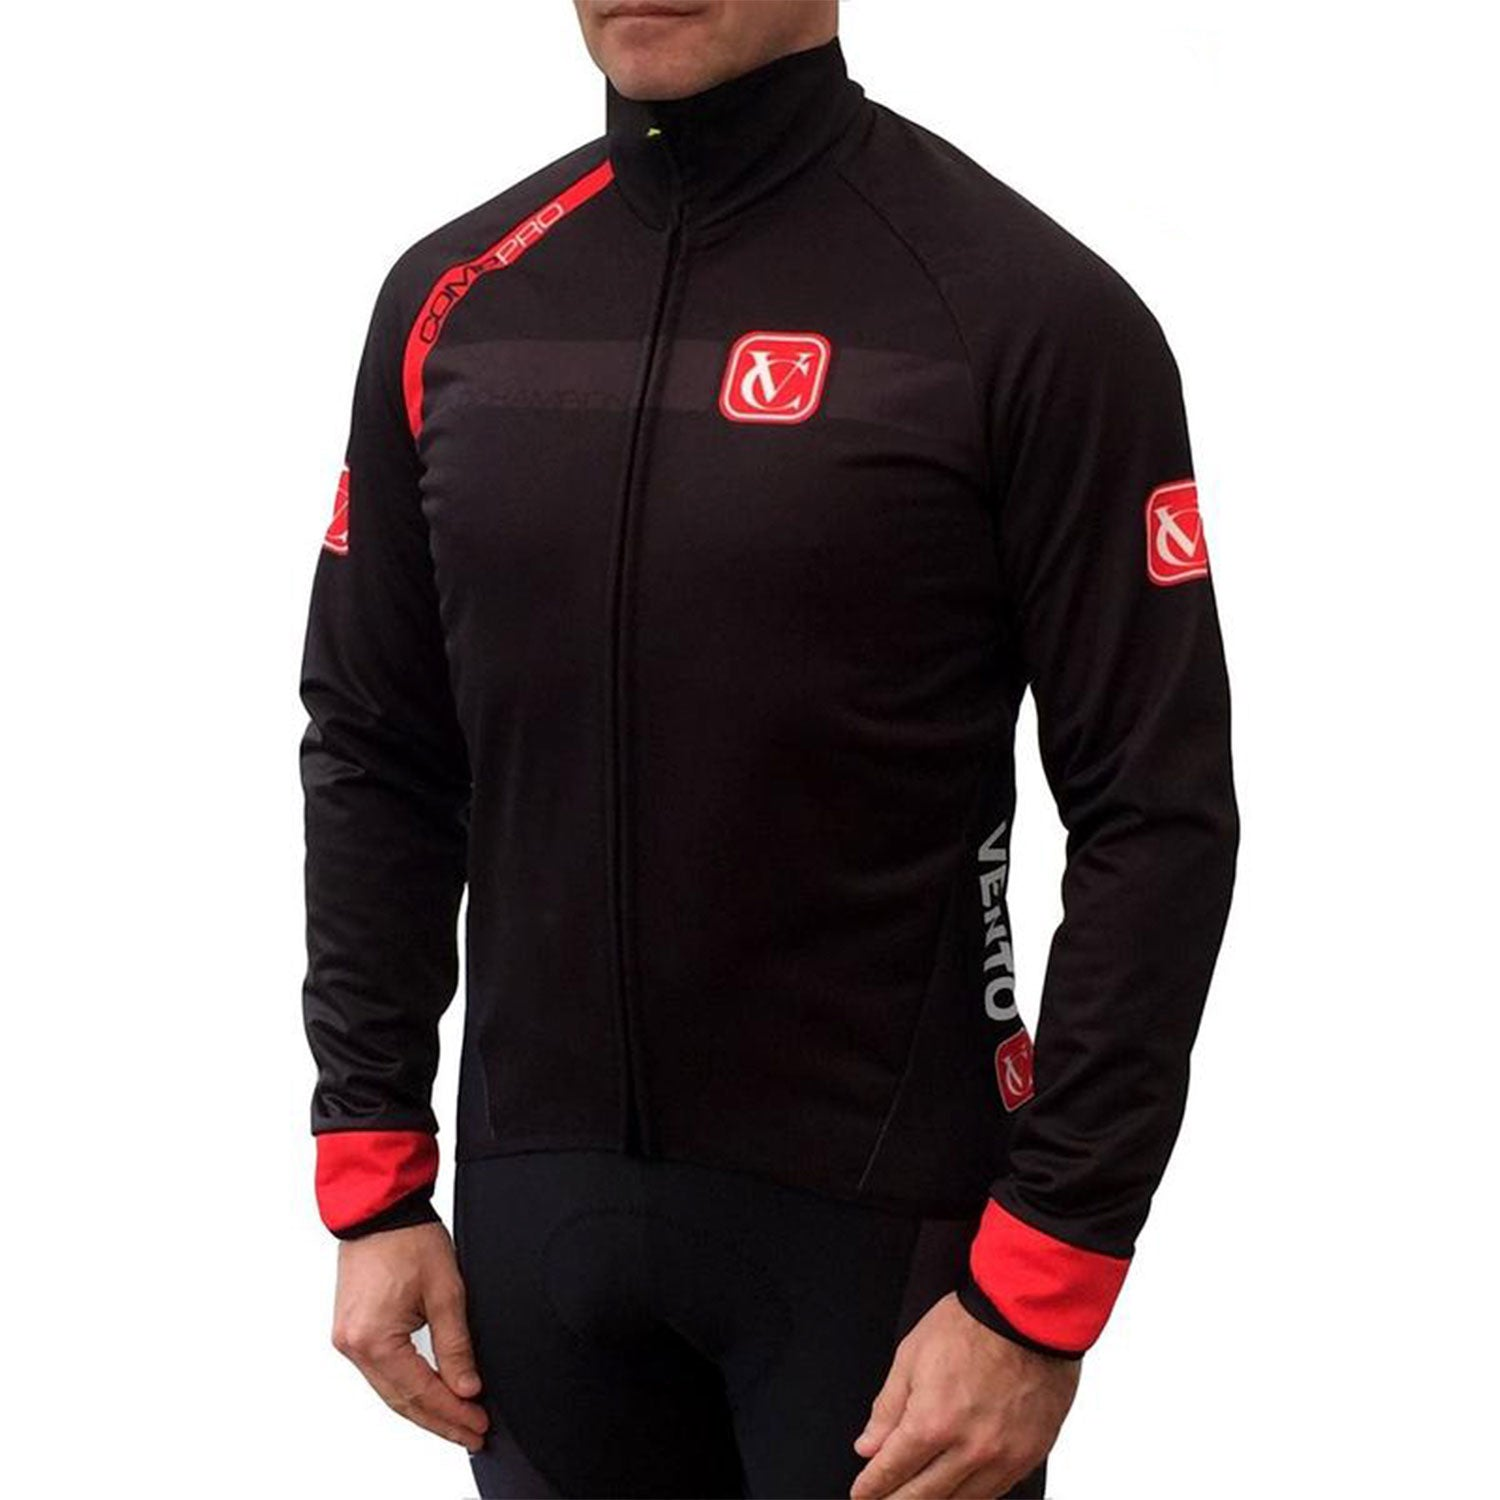 VC Comp Pro 'Vento' Winter Jacket - Velochampion